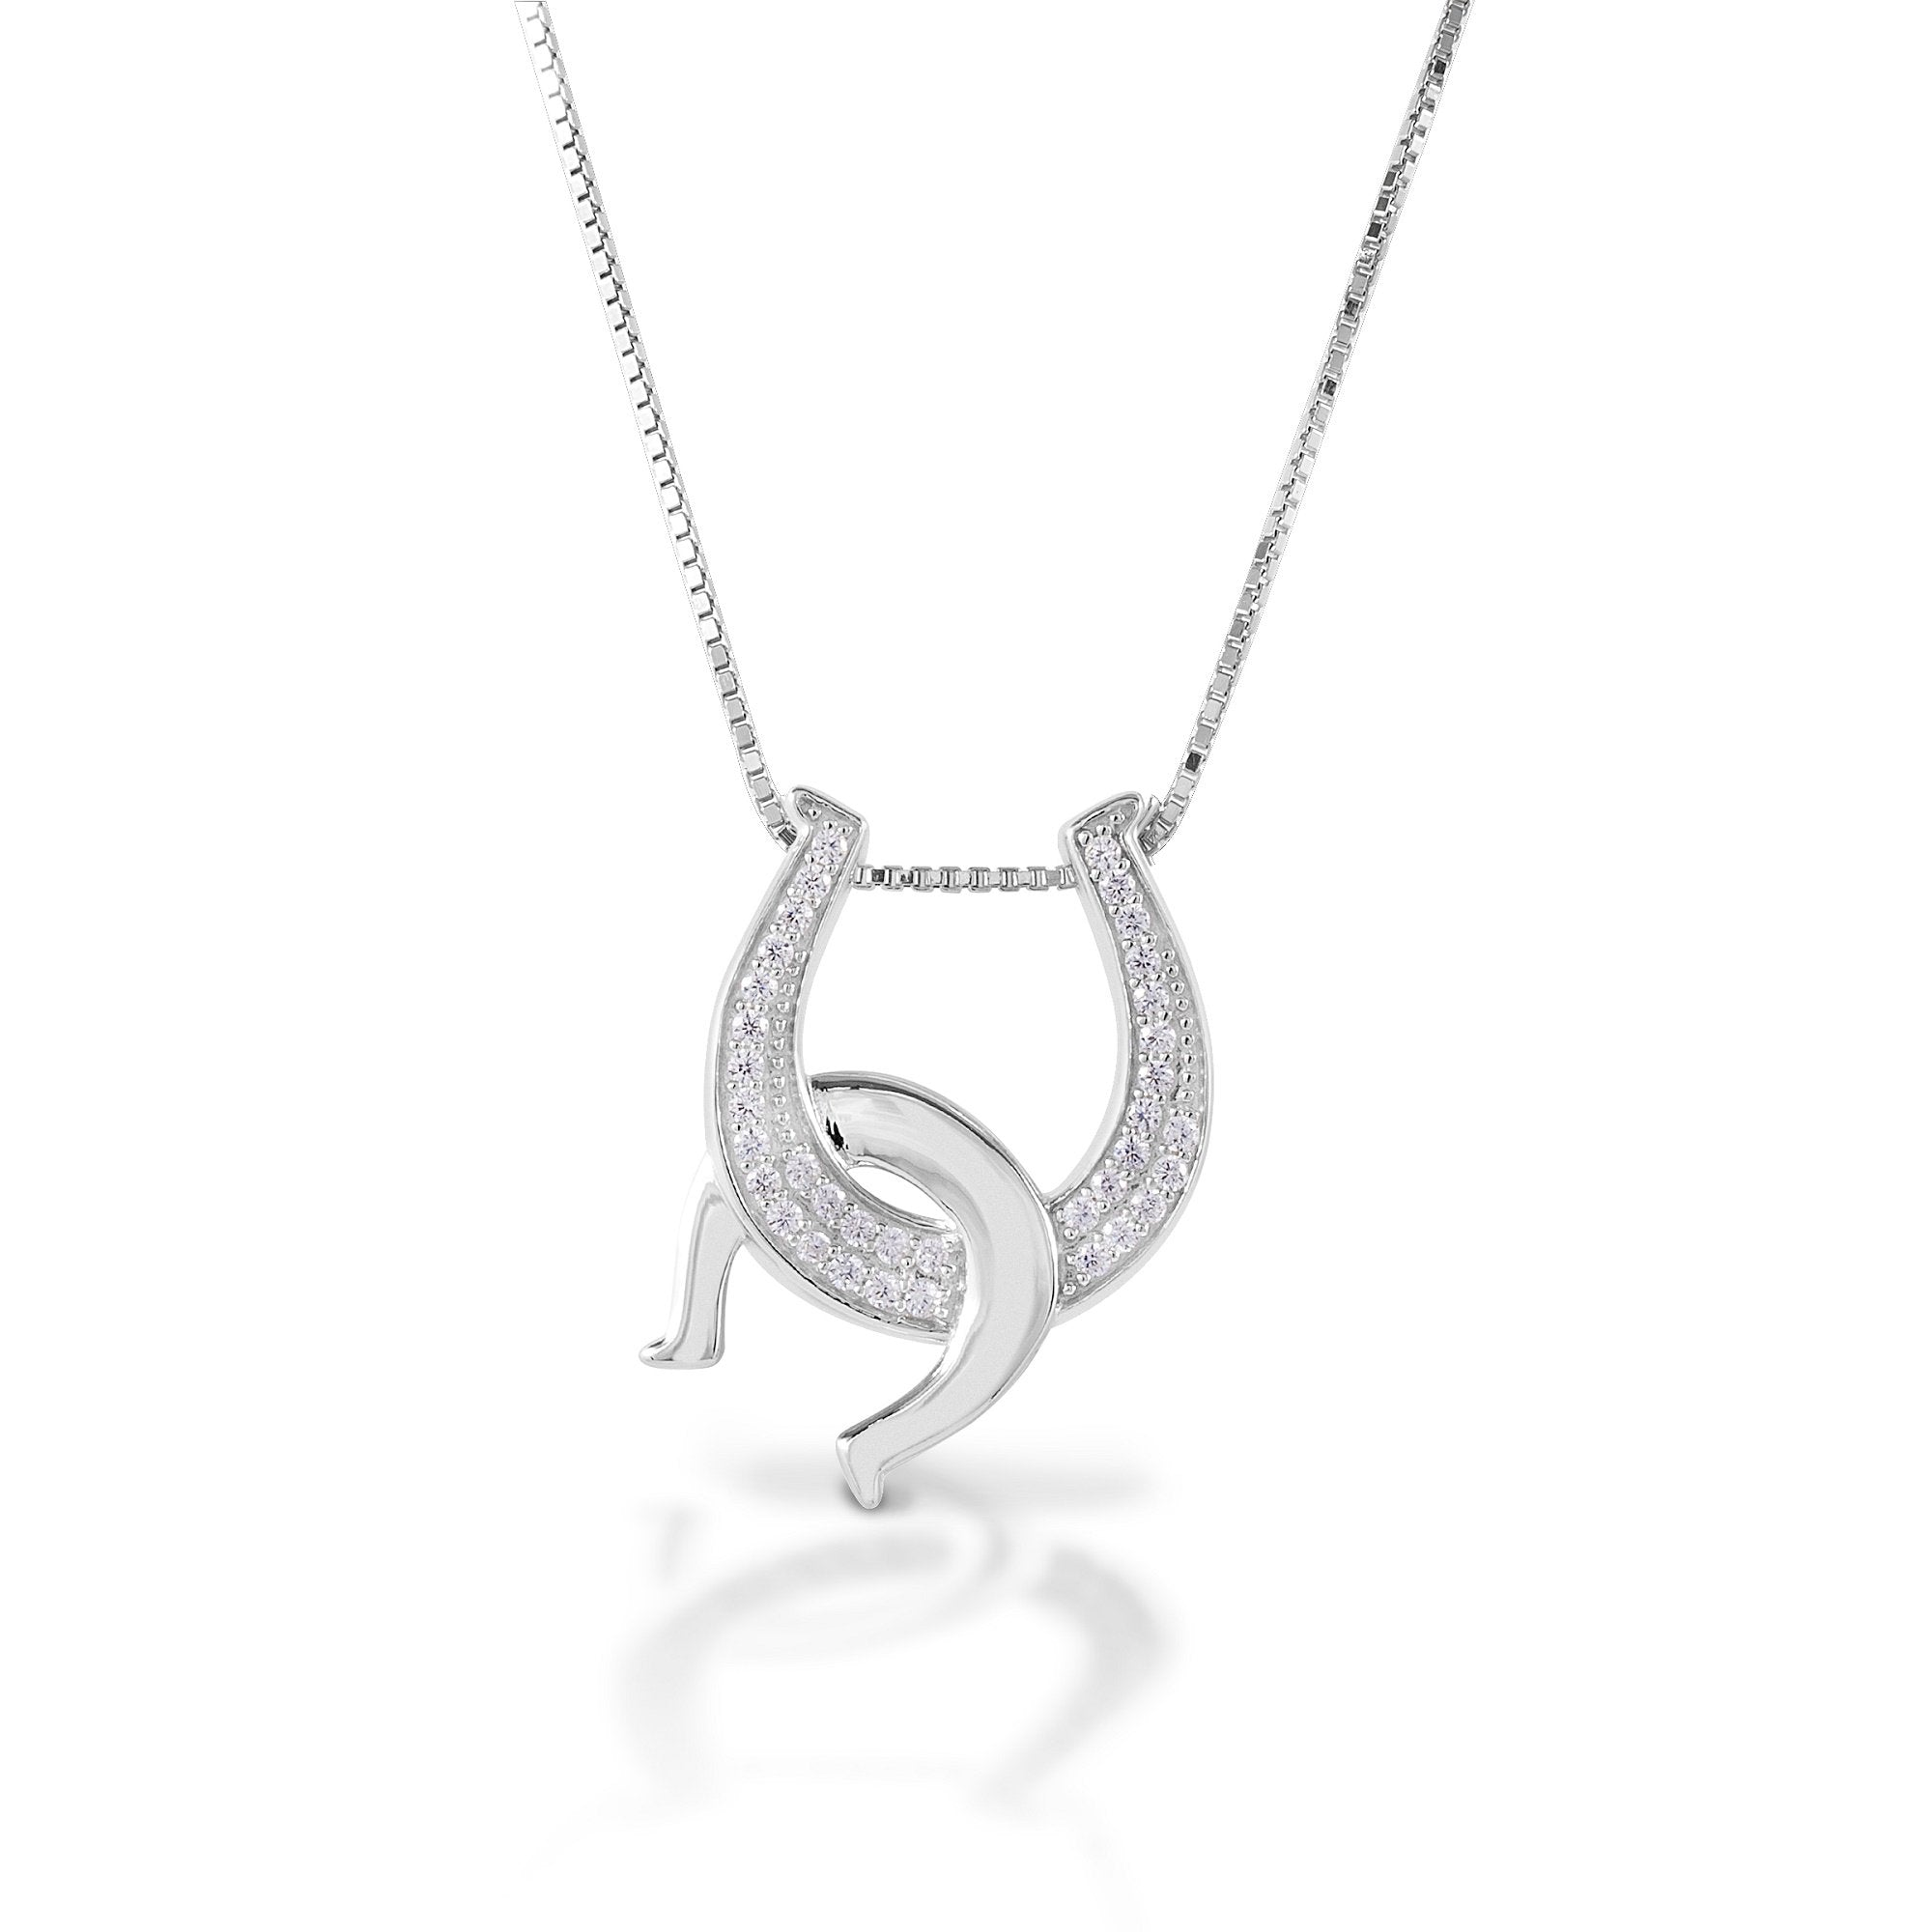 1406201 Kelly Herd Double Horseshoe Necklace Sterling Silver